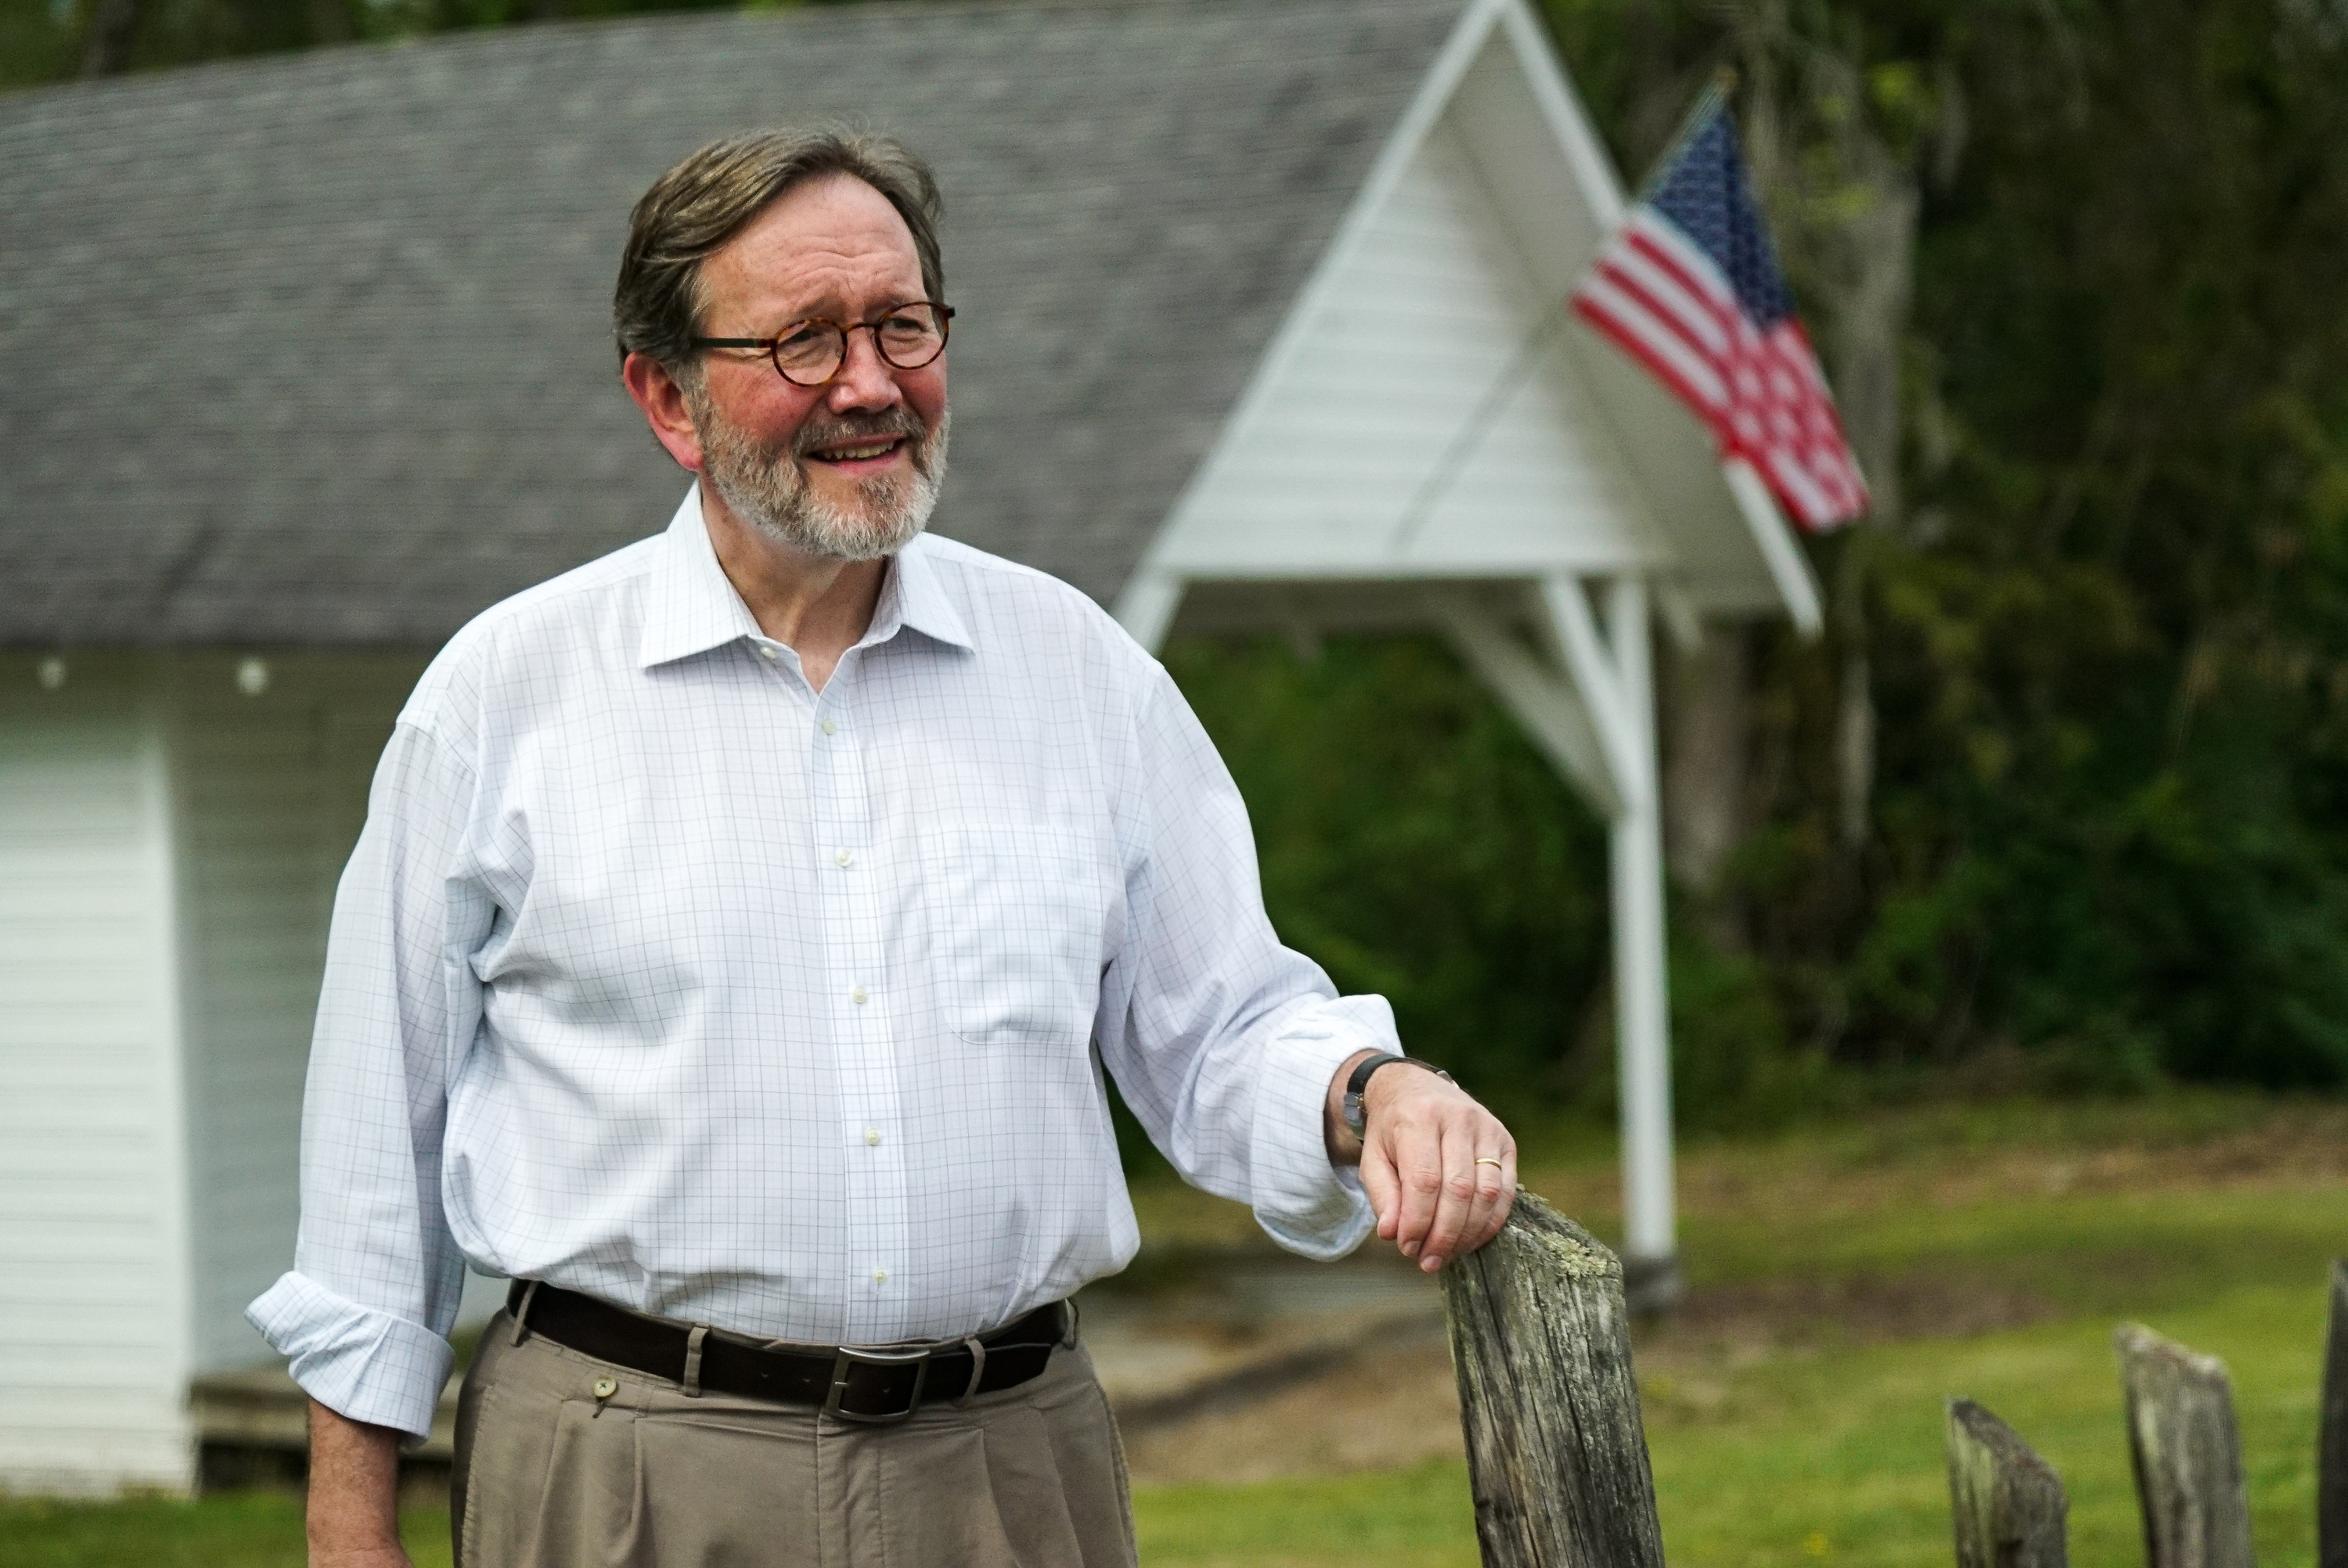 Archie Parnell was a tax law professor in Sumter, S.C., before running as a Democrat in a special congressional election in South Carolina in June 2017. (Jason Burles/CBC)